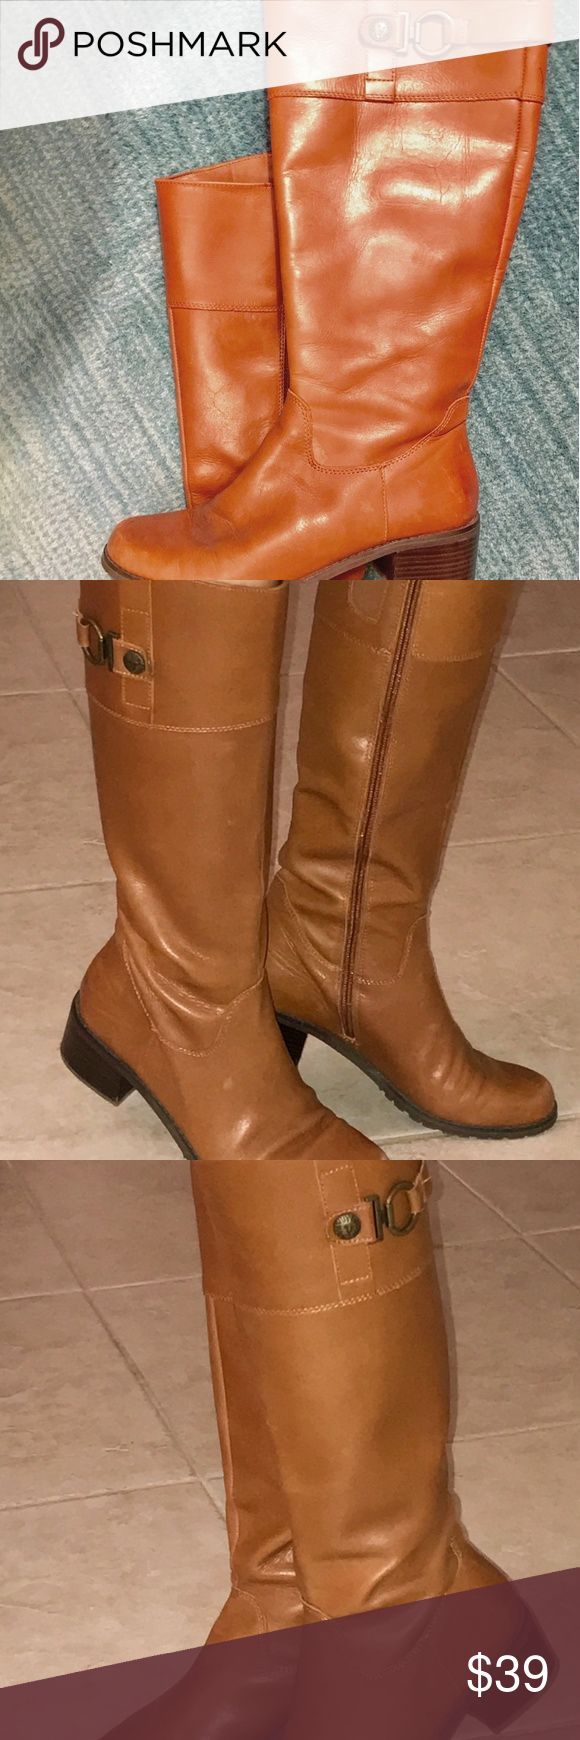 Anne Klein Akkacey Wide Calf Brown Leather boots Anne Klein Womens Akkacey Wide Calf Brown Leather Boots Size 7M Width is regular, not narrow. New without Box. See pictures for details.  Leather upper.  Side zip closure.  Elastic panel for custom fit.  Anne Klein logo printed on hardware at the top.  Smooth man made lining.  Lightly padded insole  Retail Price - $155 Anne Klein Shoes Winter & Rain Boots